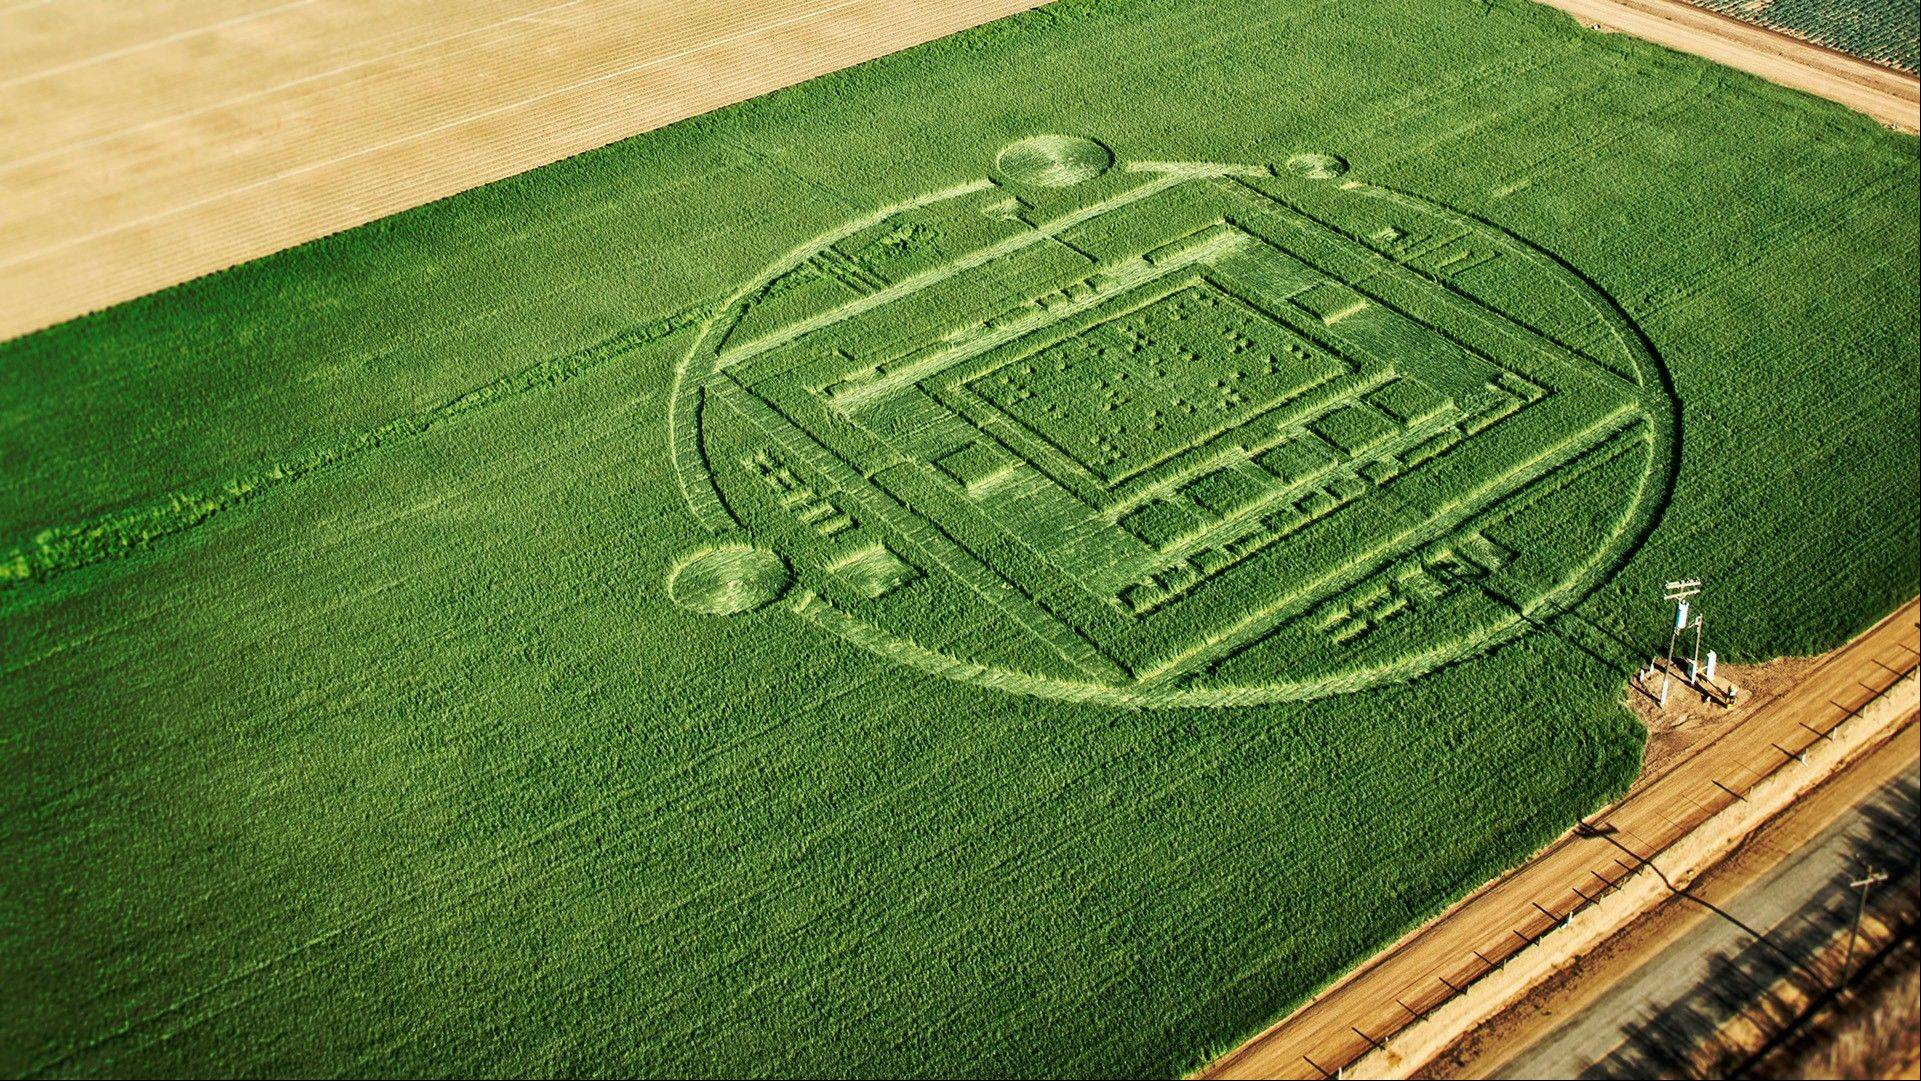 This photo provided by NVIDIA shows a 310-foot ìcrop circleî in a California barley field that mystified locals this week was explained Sunday Jan. 6, 2014: it was a publicity stunt by Nvidia Corp., a maker of chips for PCs and smartphones. T